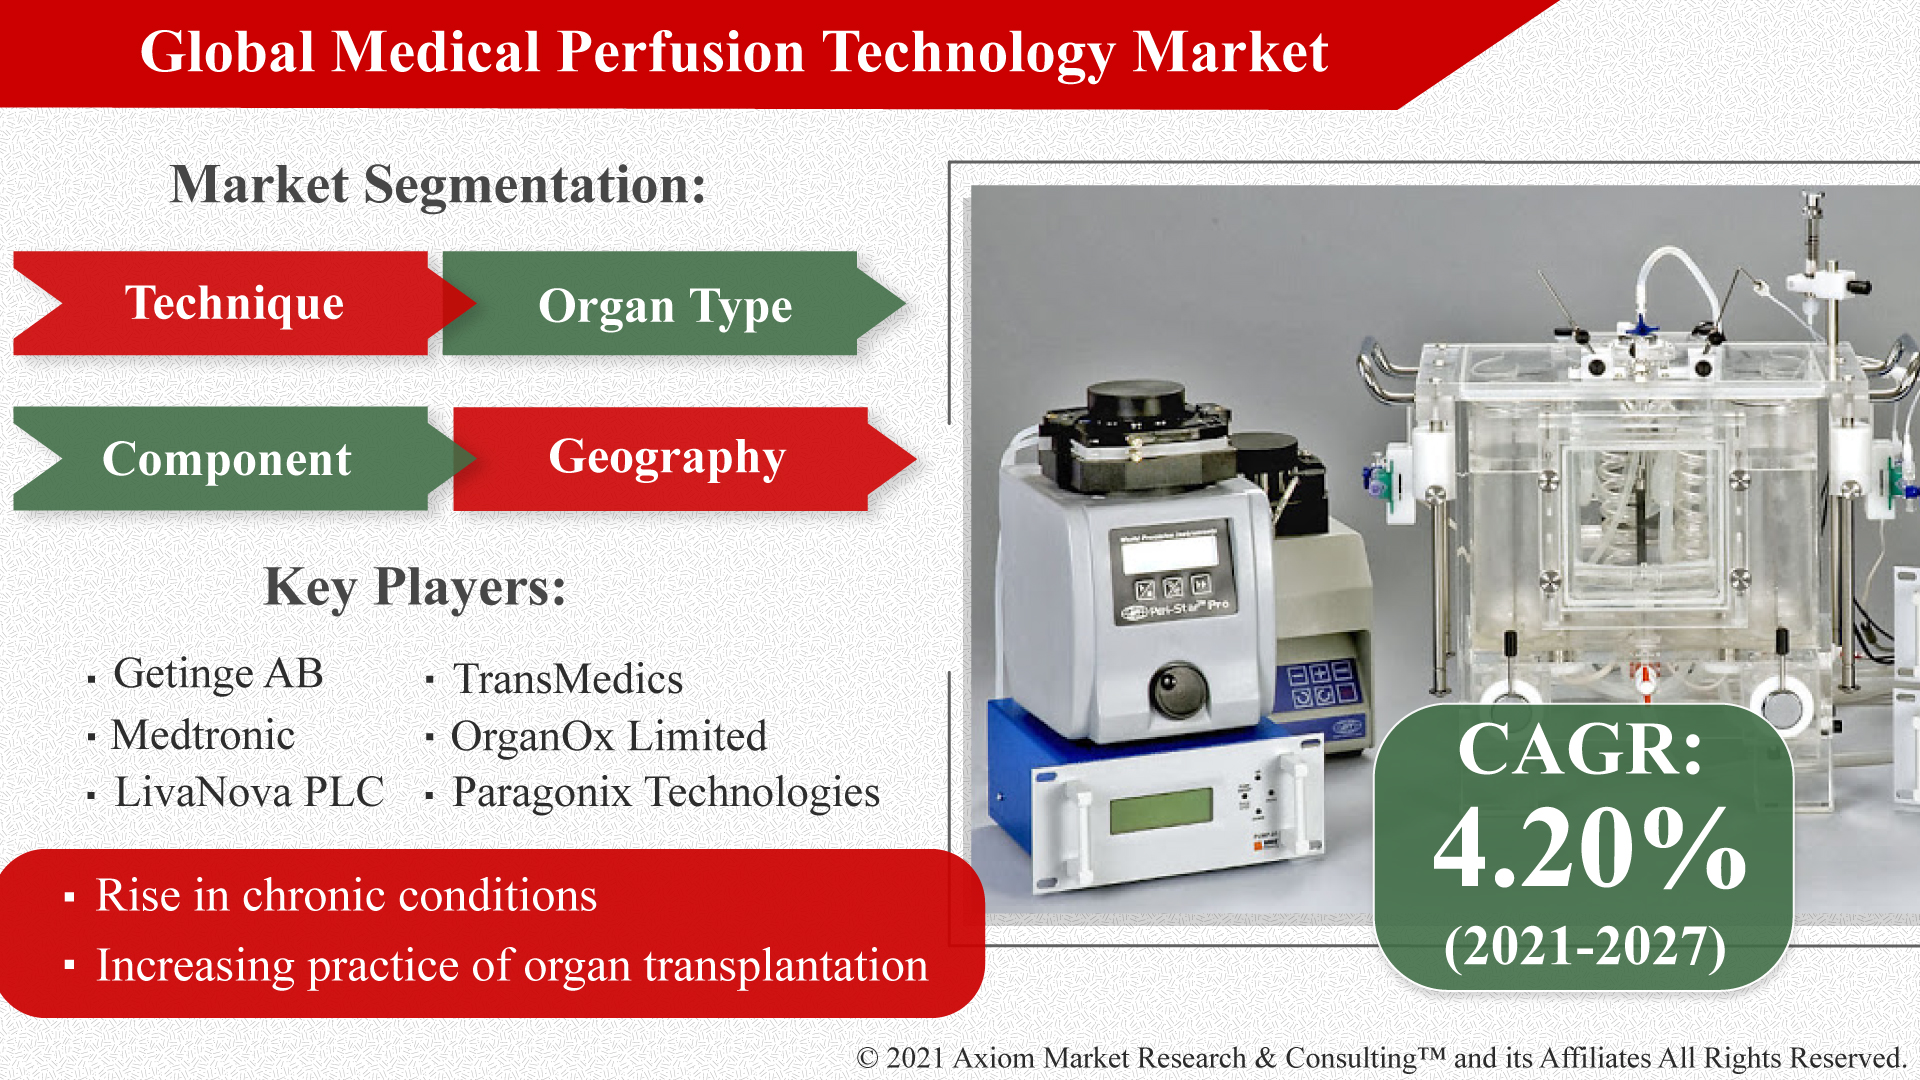 Global-Medical-Perfusion-Technology-Market